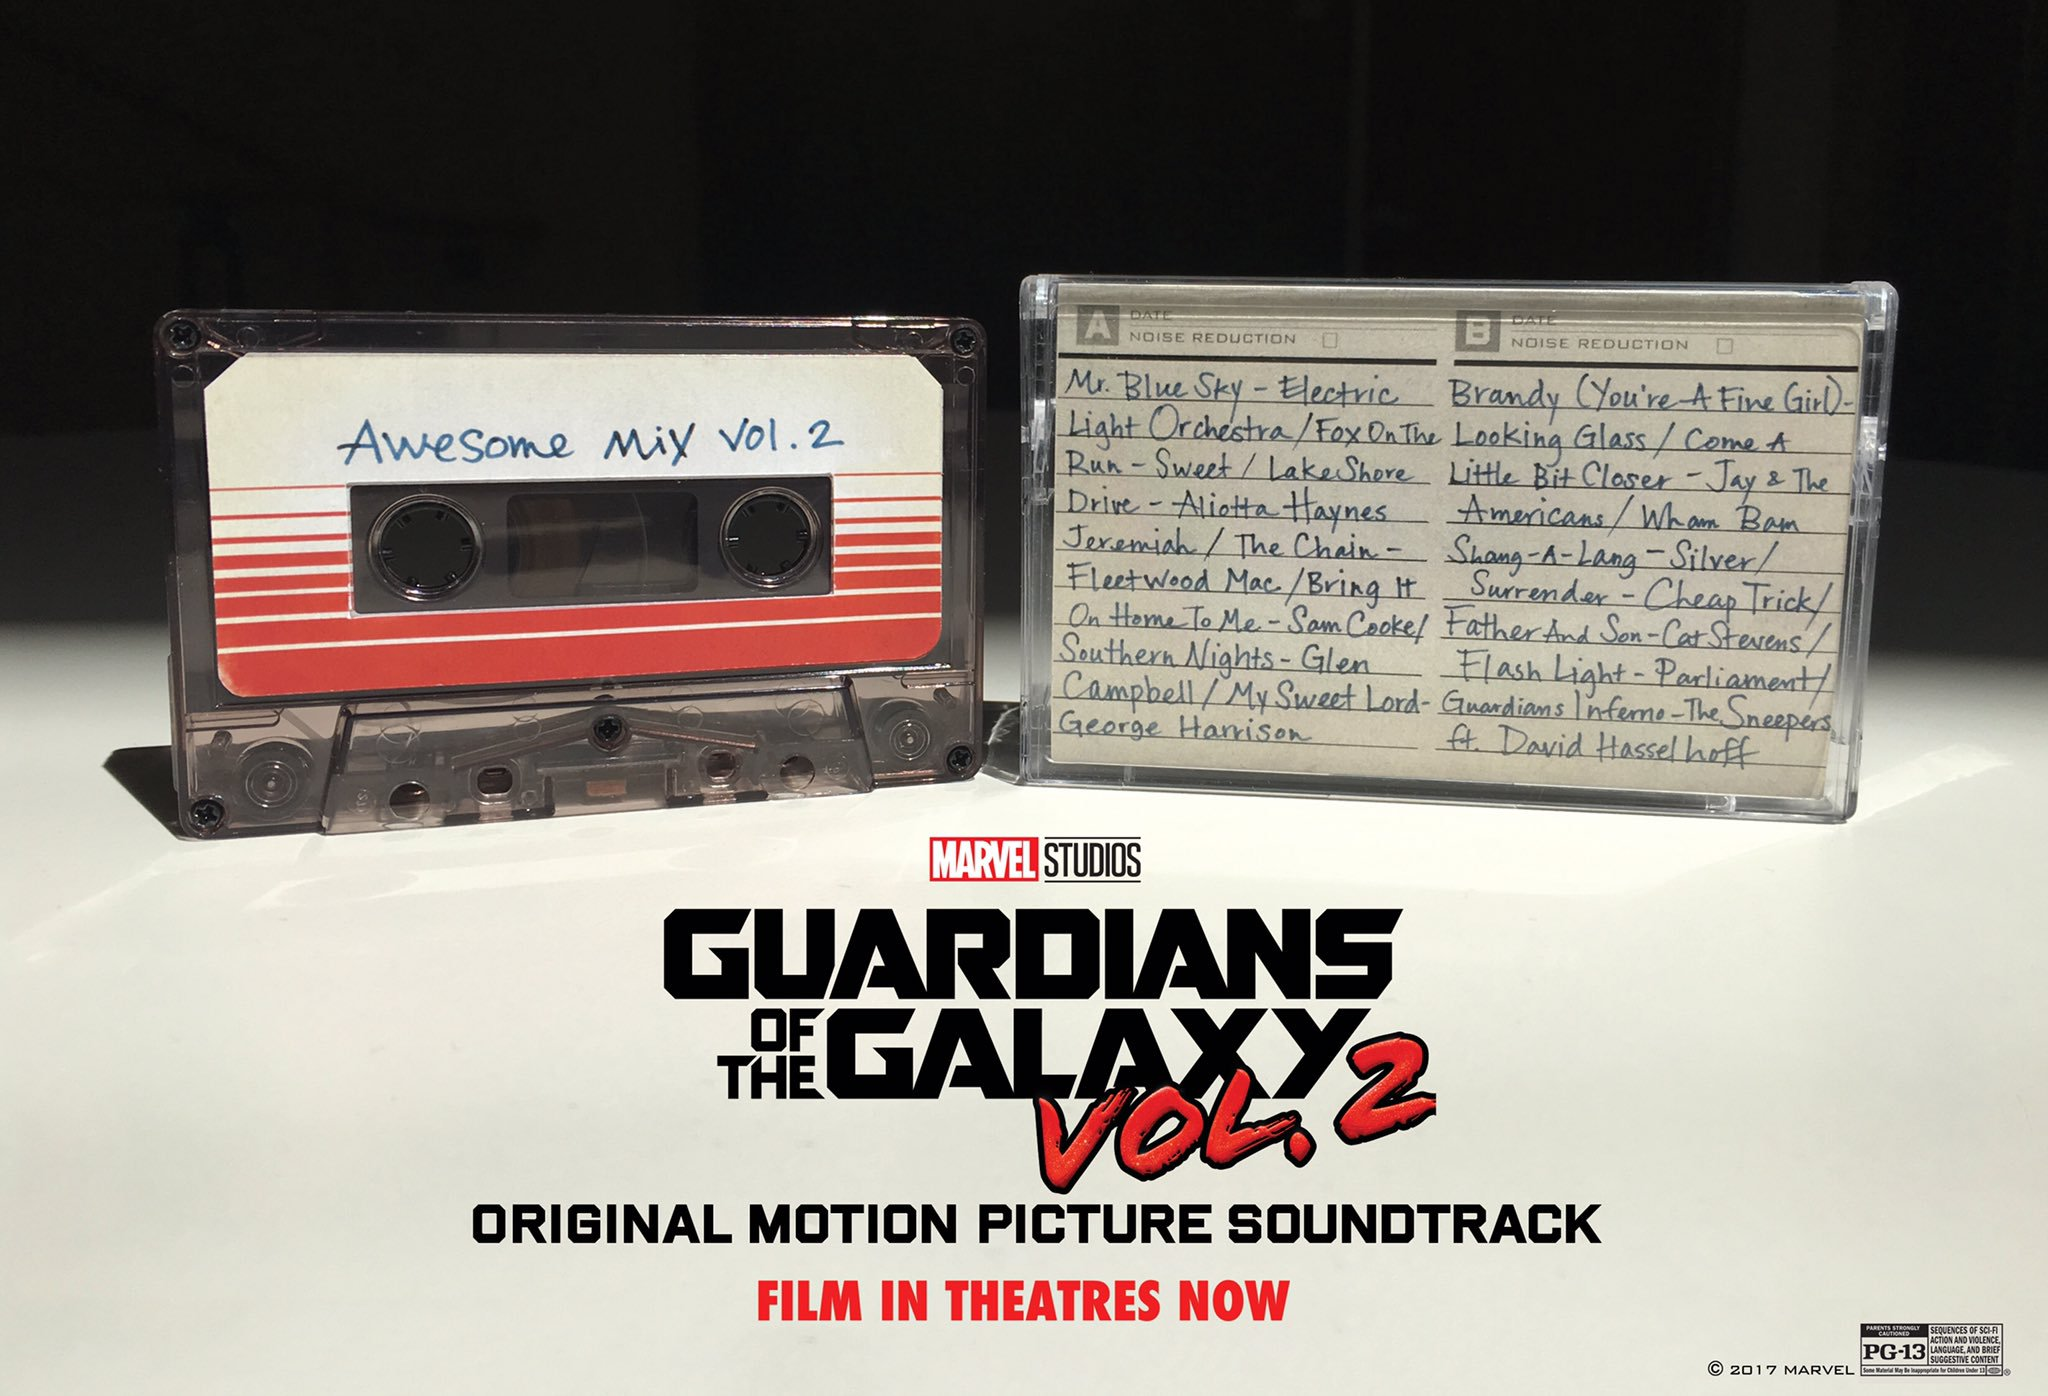 c fffi u0aaq1qz Guardians of the Galaxy Vol. 2 soundtrack coming to vinyl and cassette